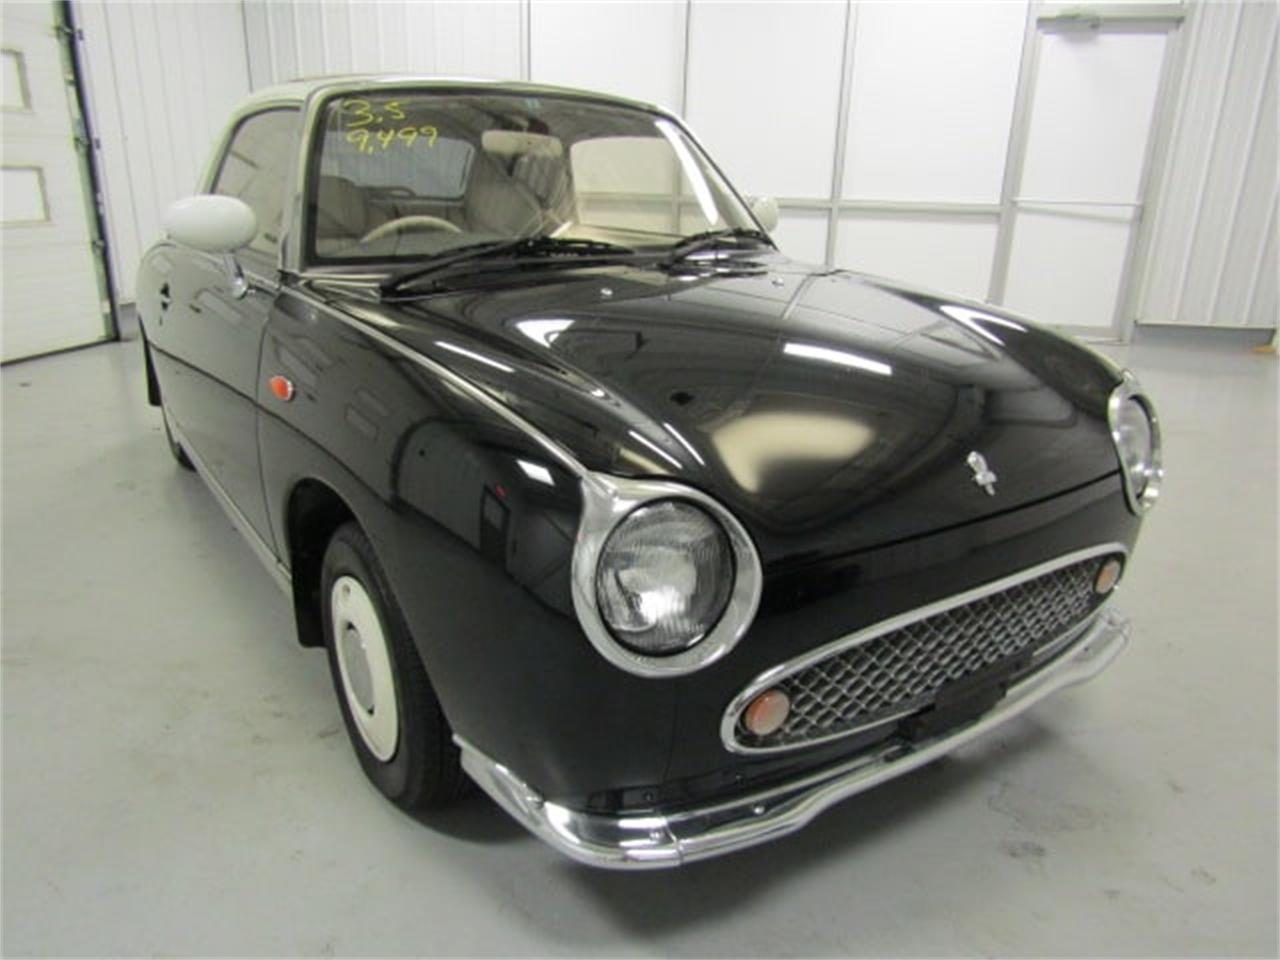 Large Picture of '91 Nissan Figaro - $10,900.00 Offered by Duncan Imports & Classic Cars - JQ9C